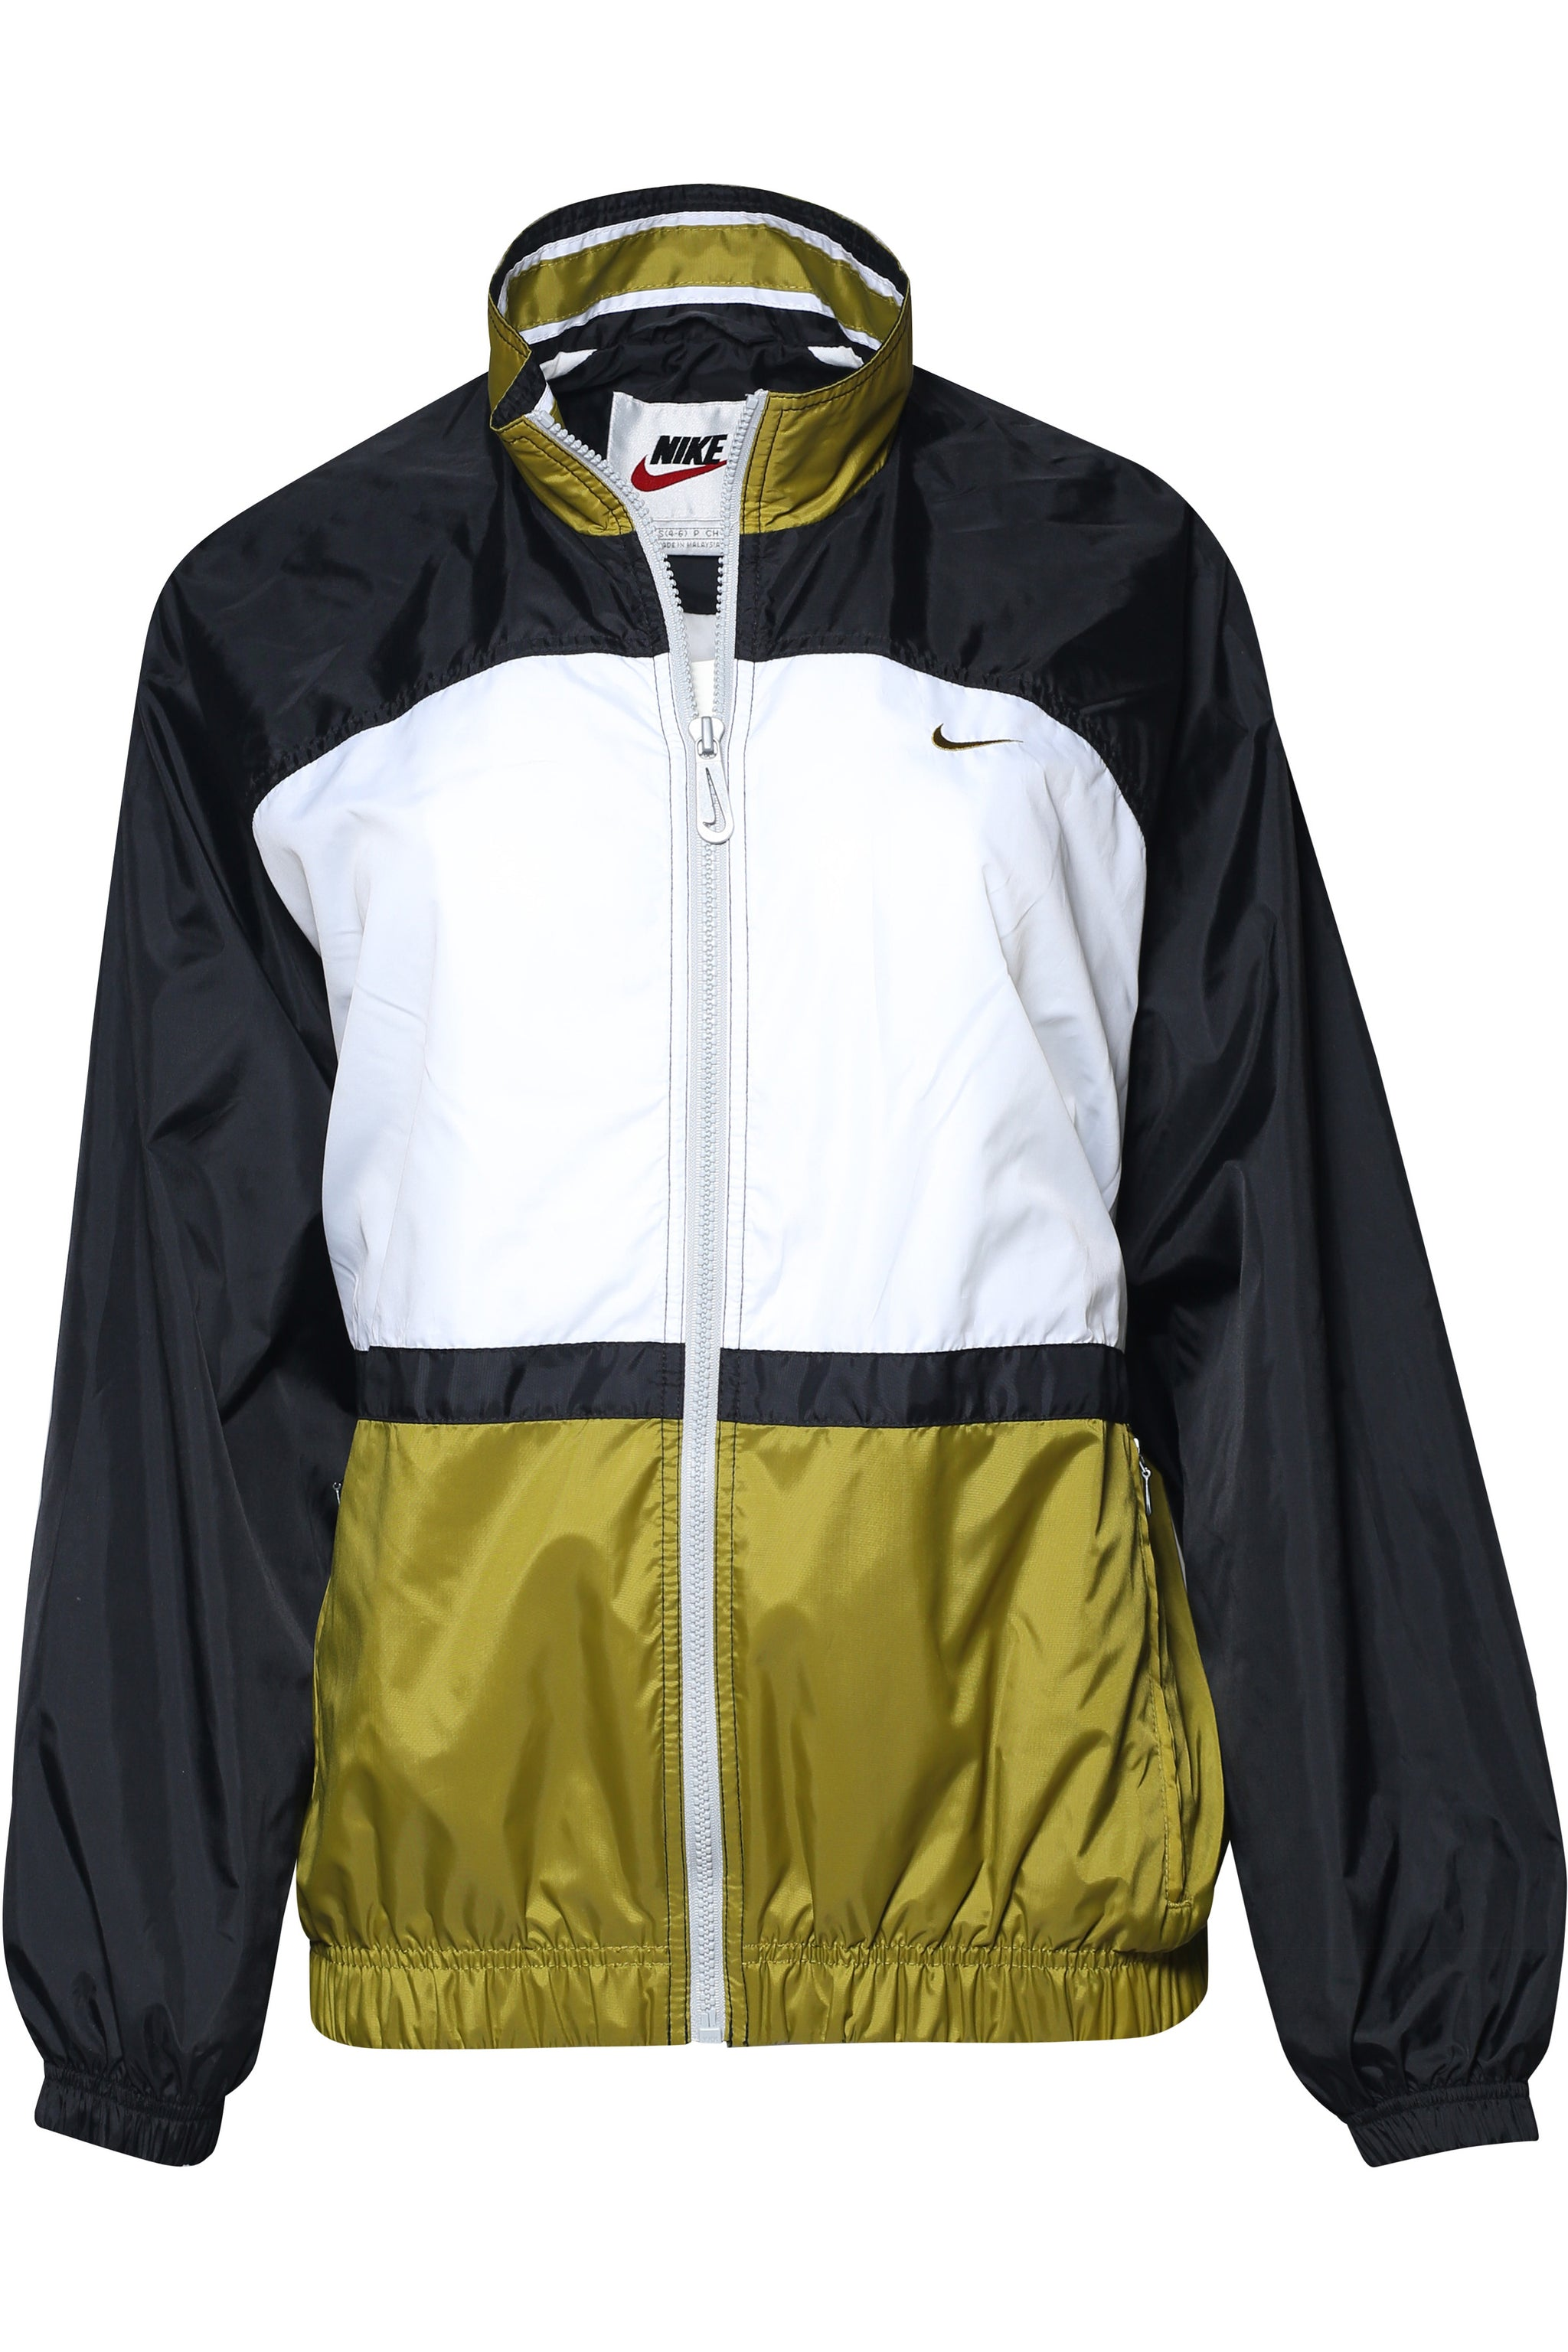 super cheap crazy price stable quality VINTAGE NIKE WINDBREAKER (BLK WHT GOLDEN LIME )